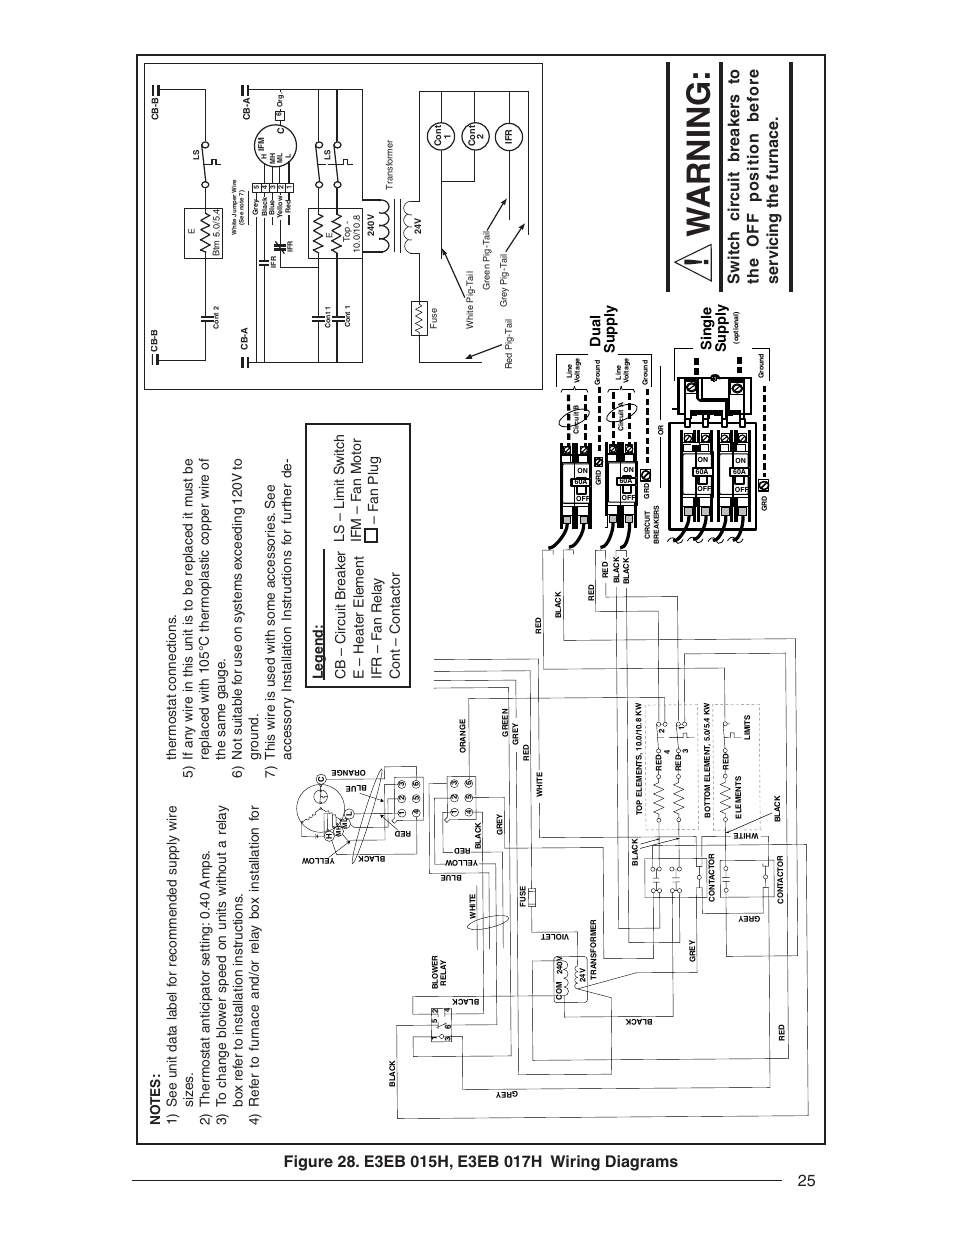 Wiring Diagram For Nordyne Model #s3ba-048k